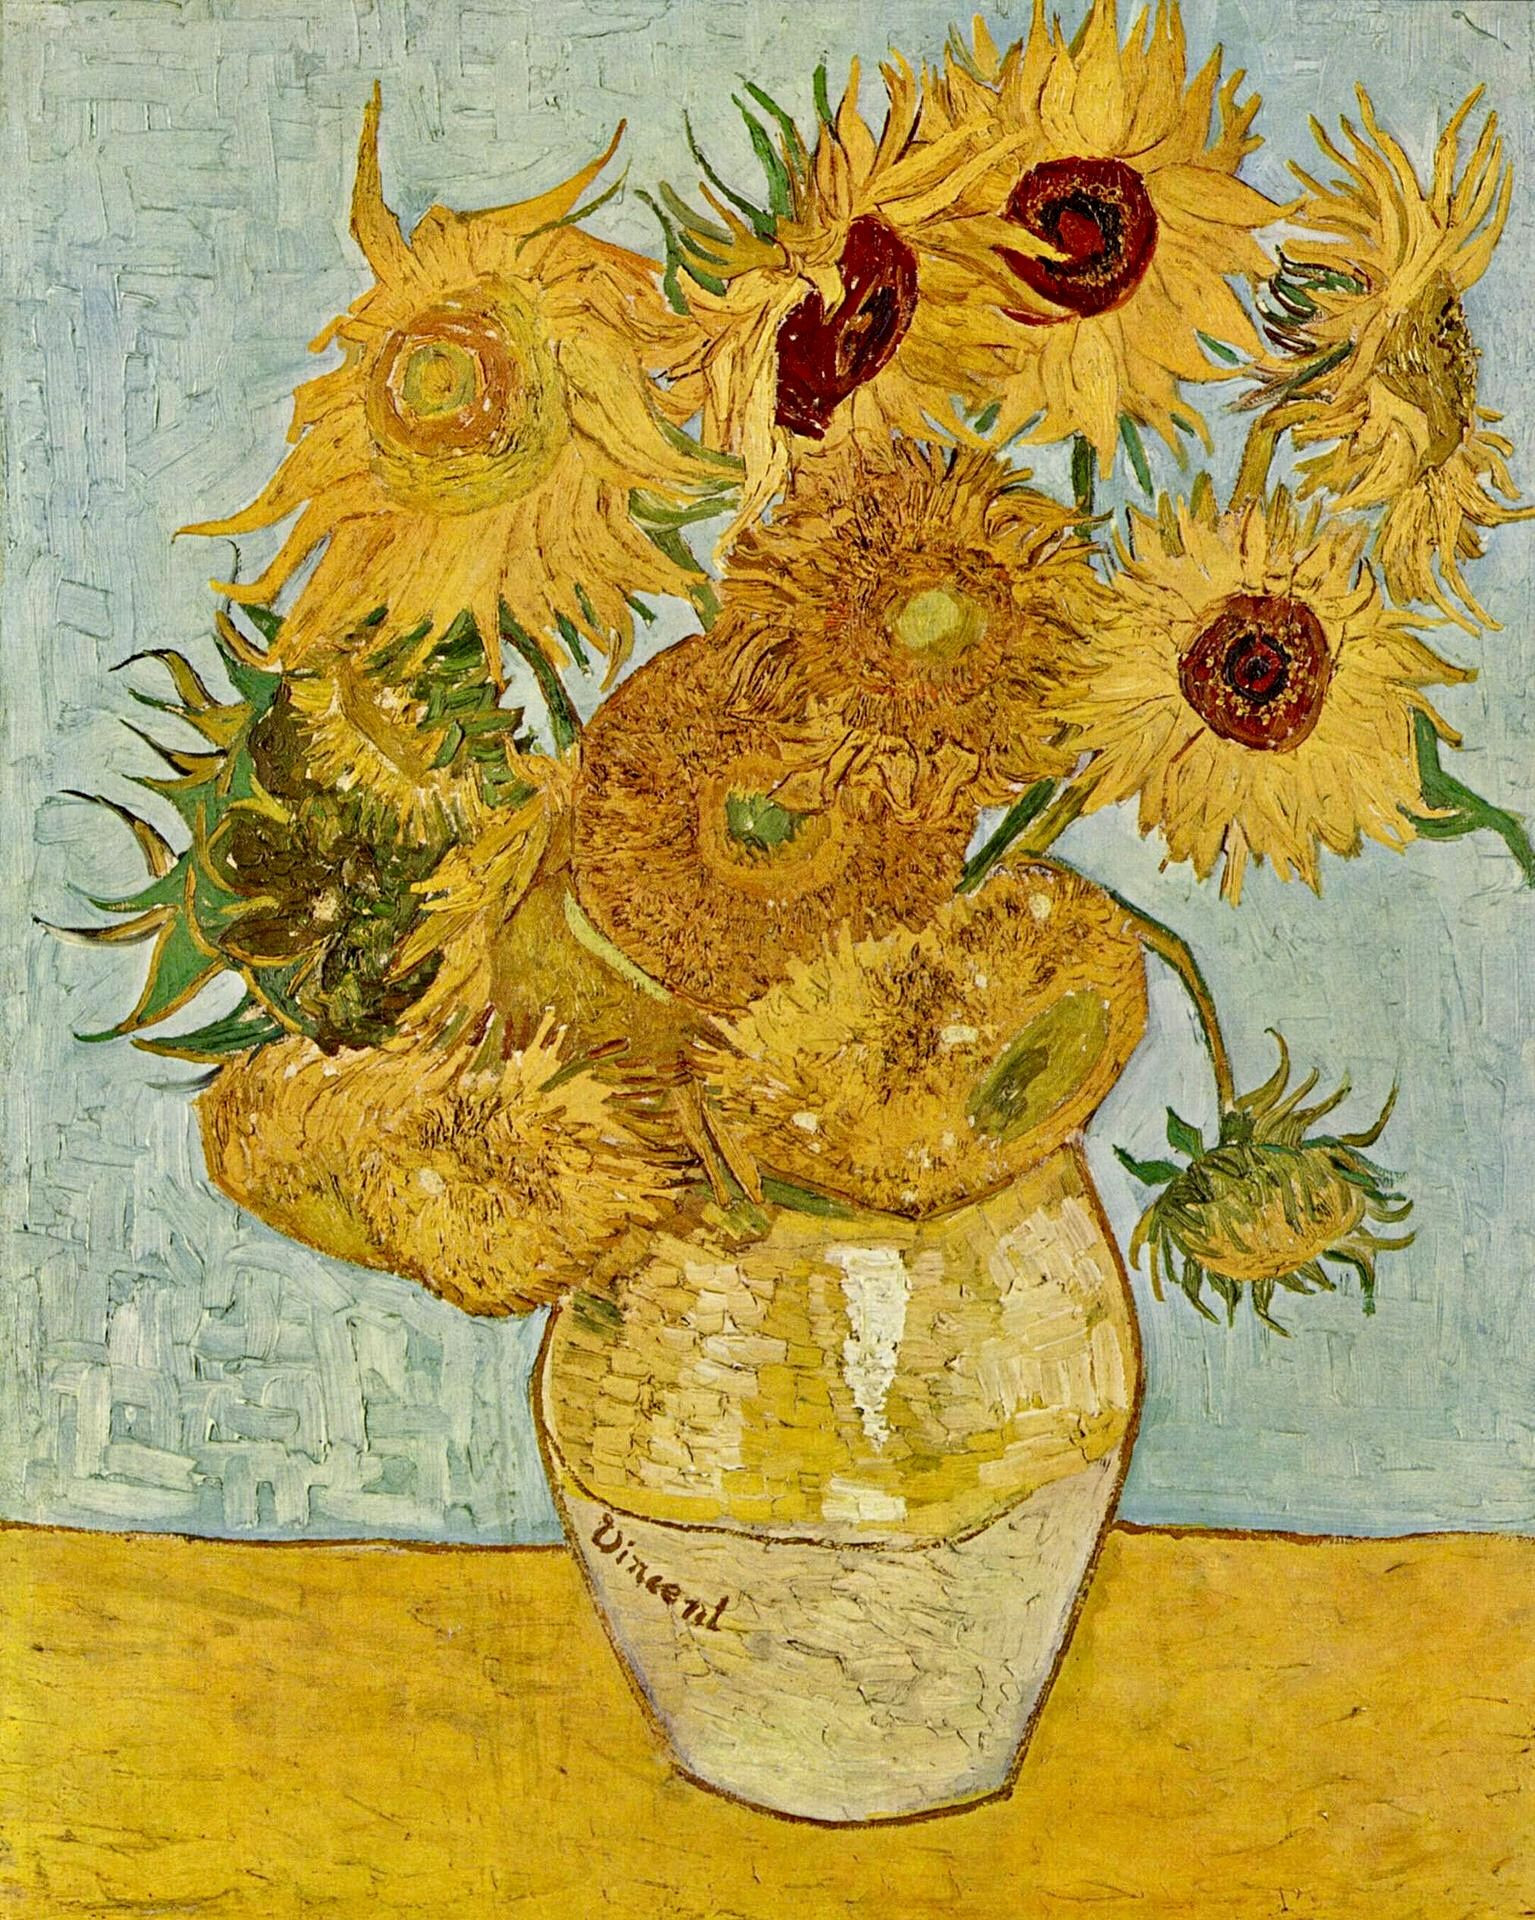 A Vase Of Flowers by Paul Gauguin Of Still Life Vase with Twelve Sunflowers He Worked His Sunflower with Regard to Still Life Vase with Twelve Sunflowers He Worked His Sunflower Series In Anticipation Of Paul Gauguins Arrival In Arles In A Letter to Emile Bernard In